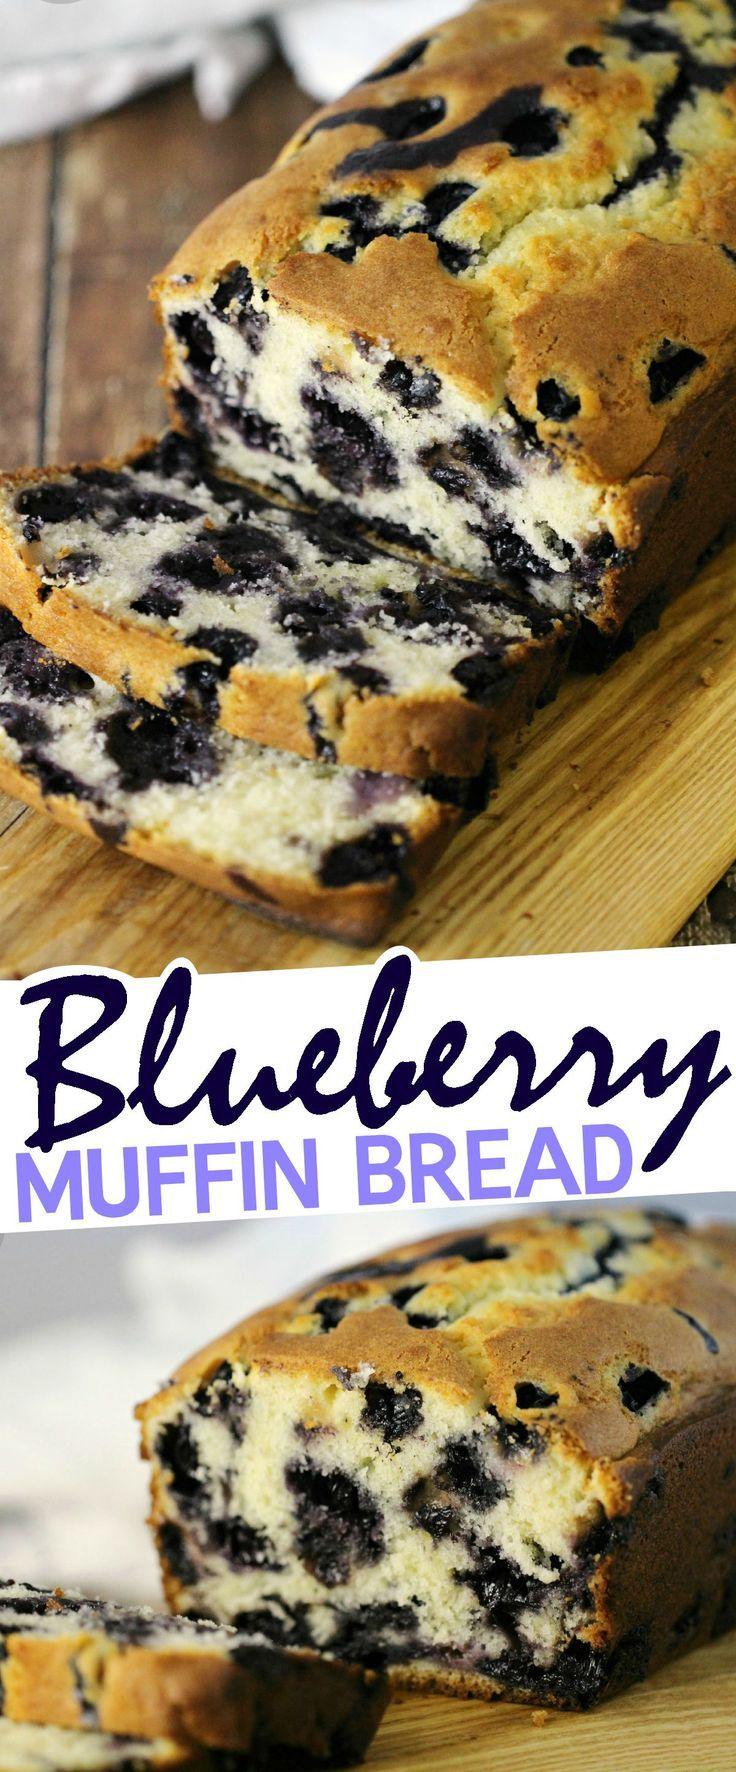 Blueberry Muffin Bread - This blueberry loaf is wonderful after dinner with some coffee but equally good for breakfast.